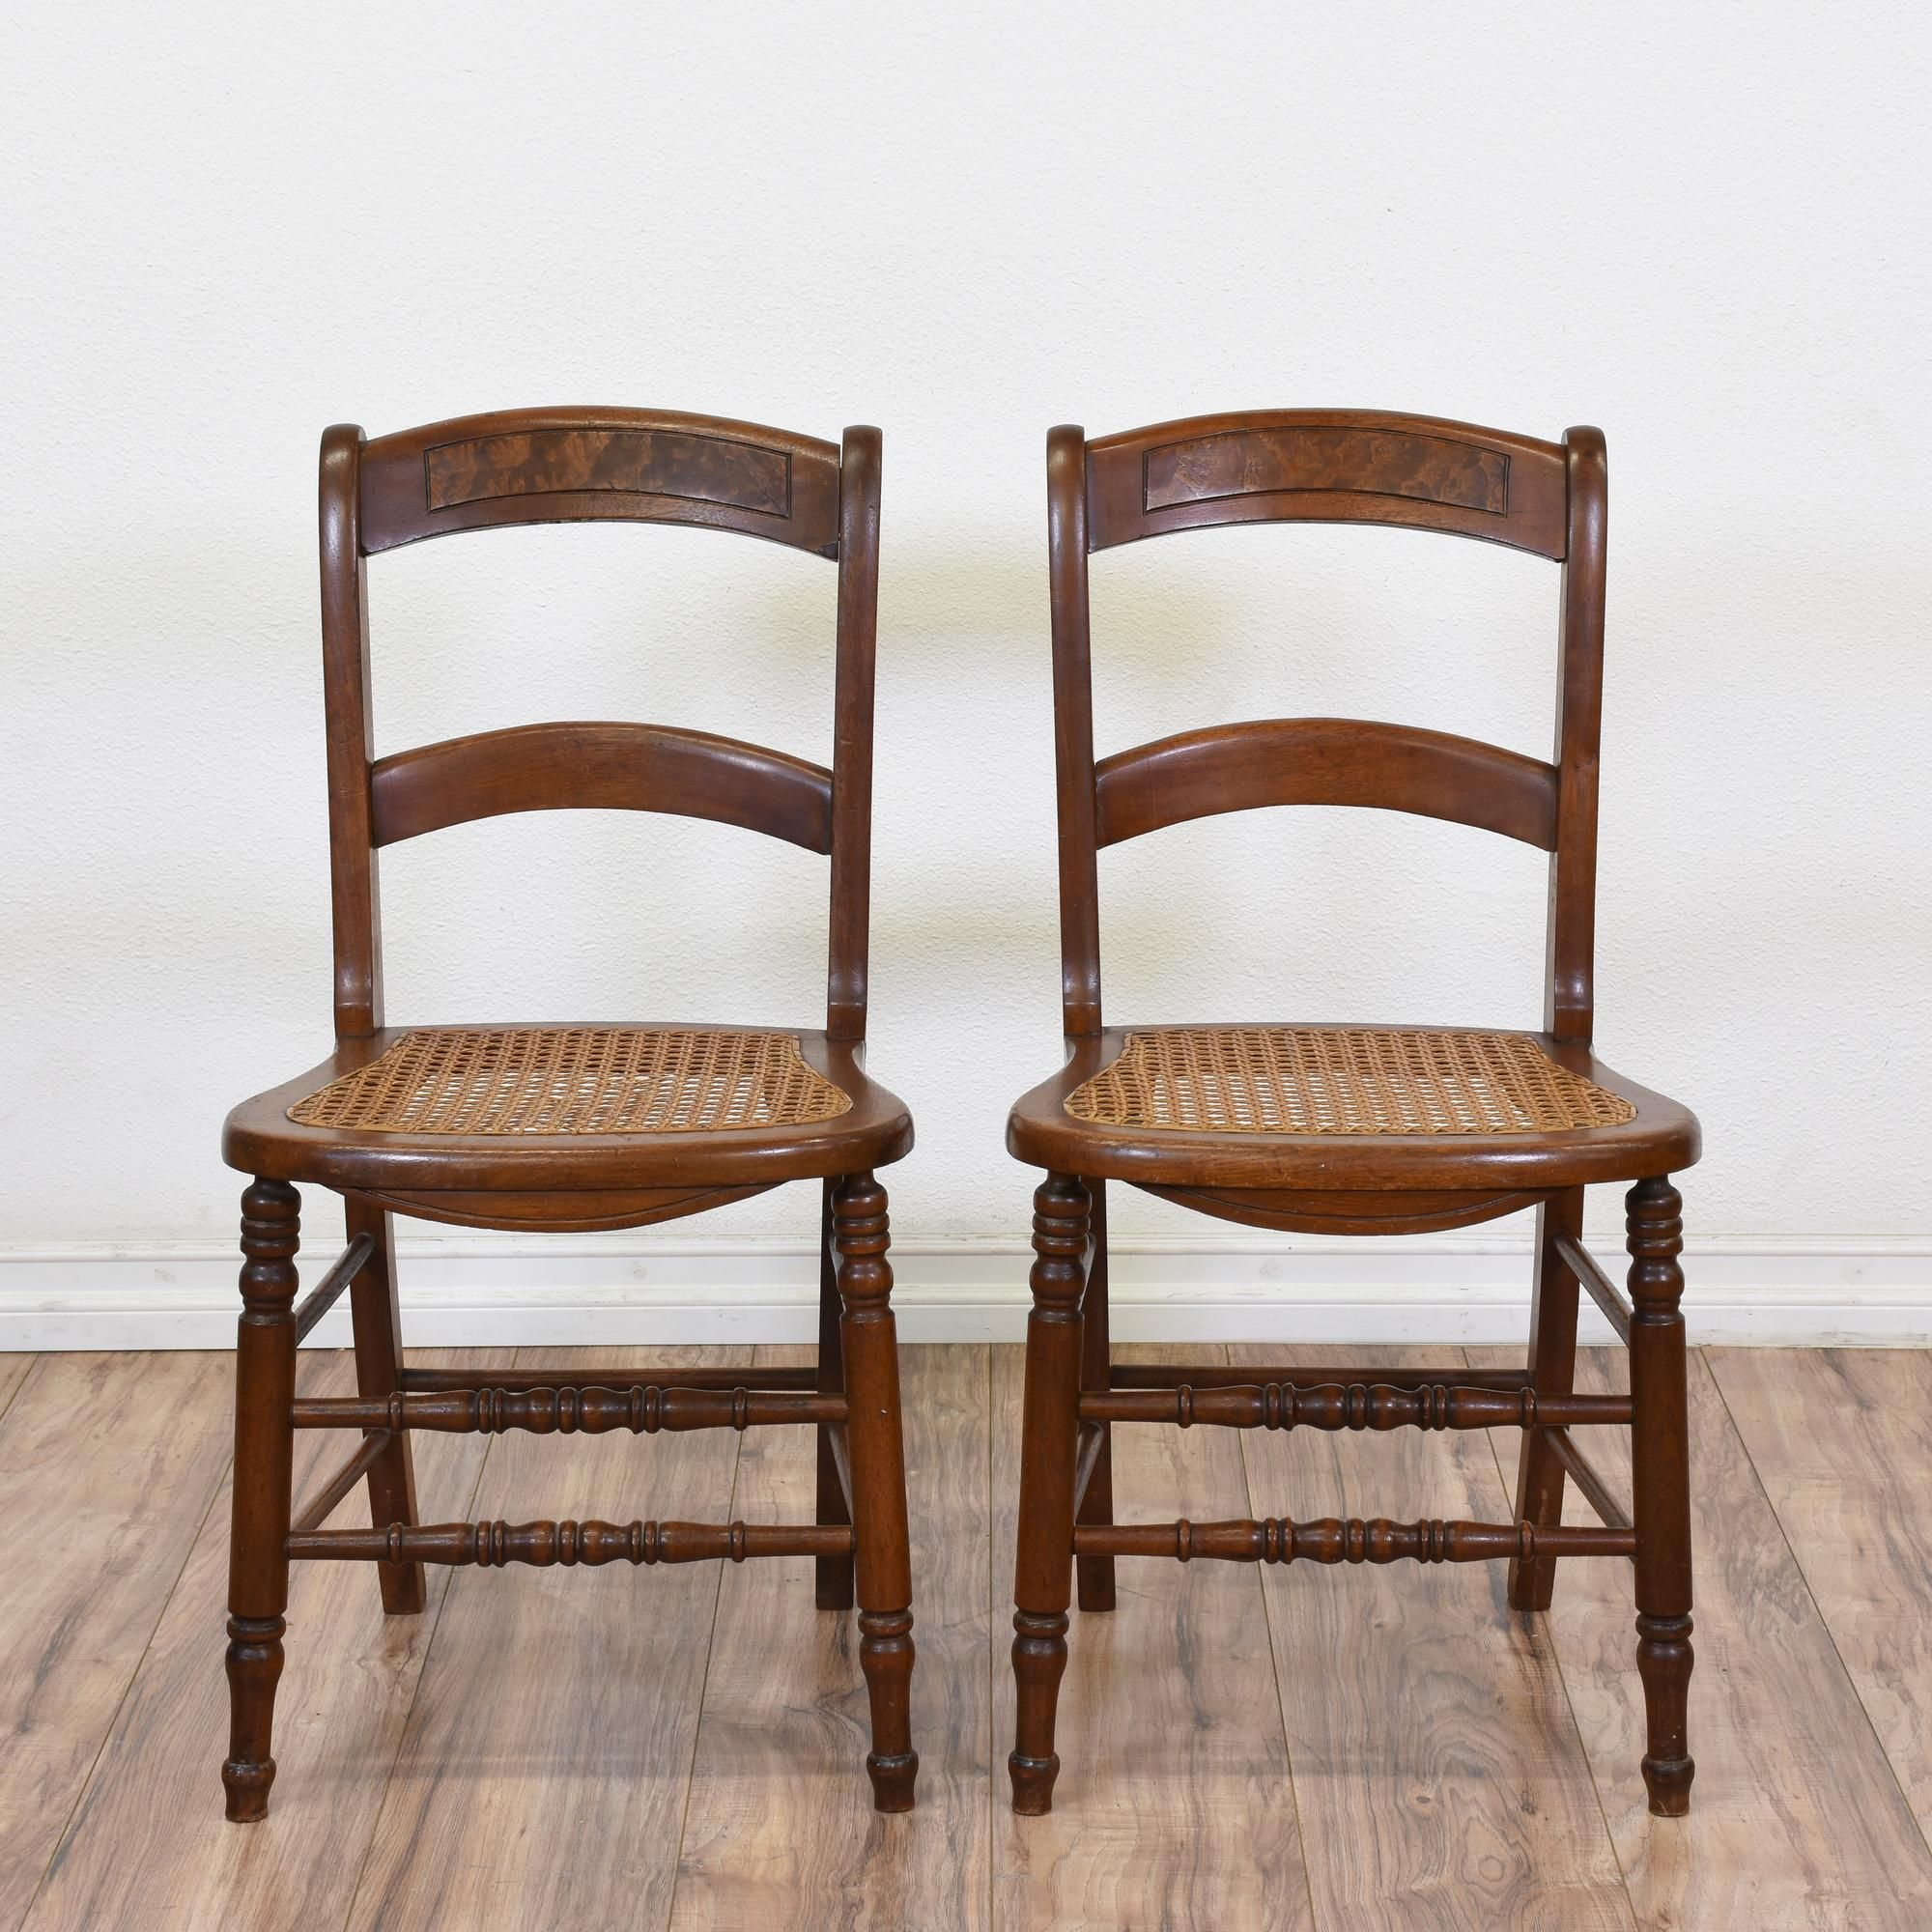 These cane seat dining chairs are featured in a solid wood with a